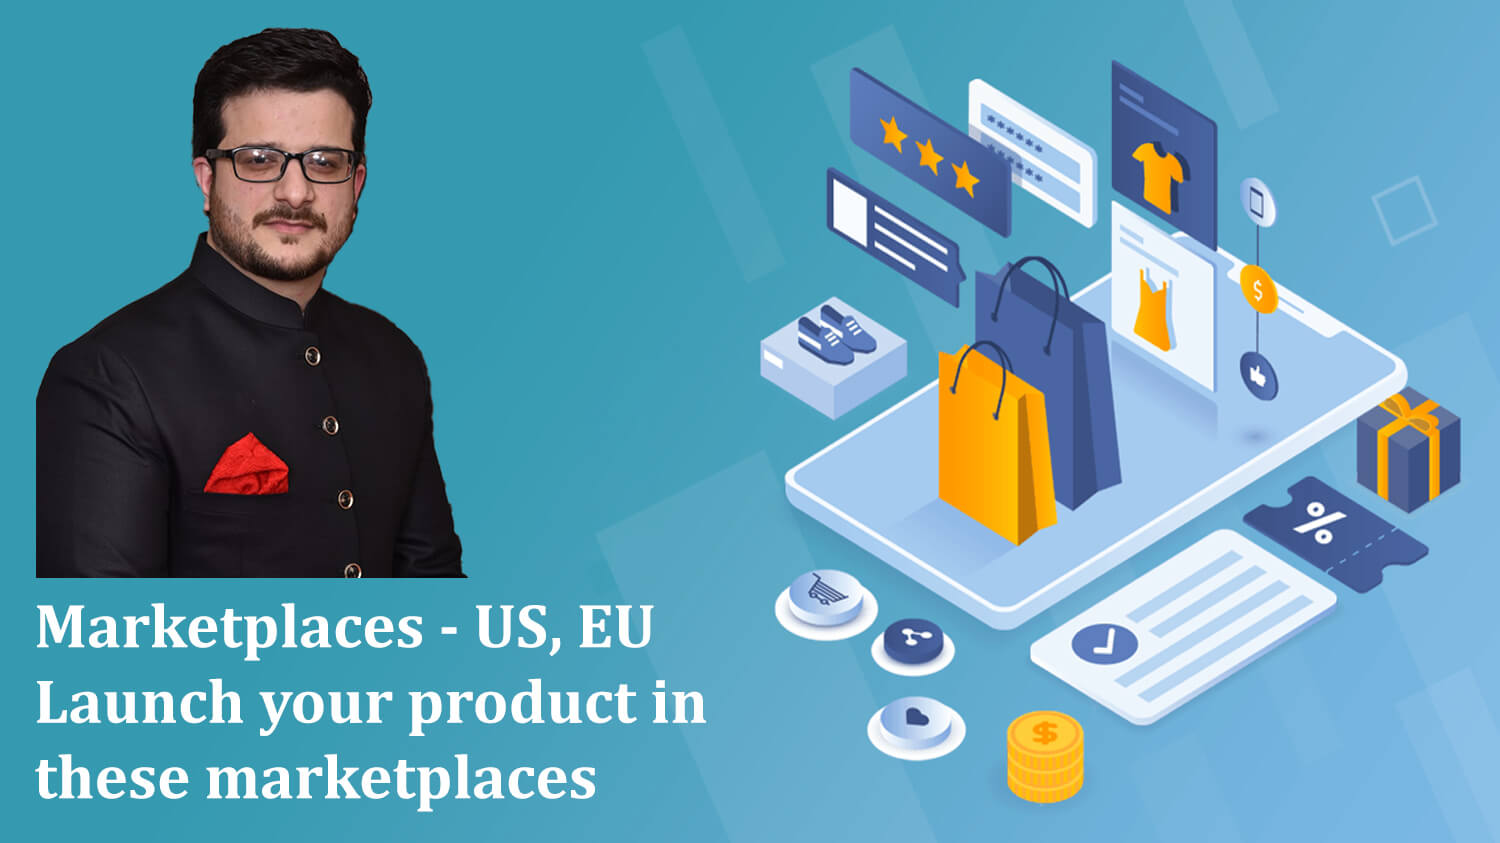 Launch Your Product in US, EU Marketplaces